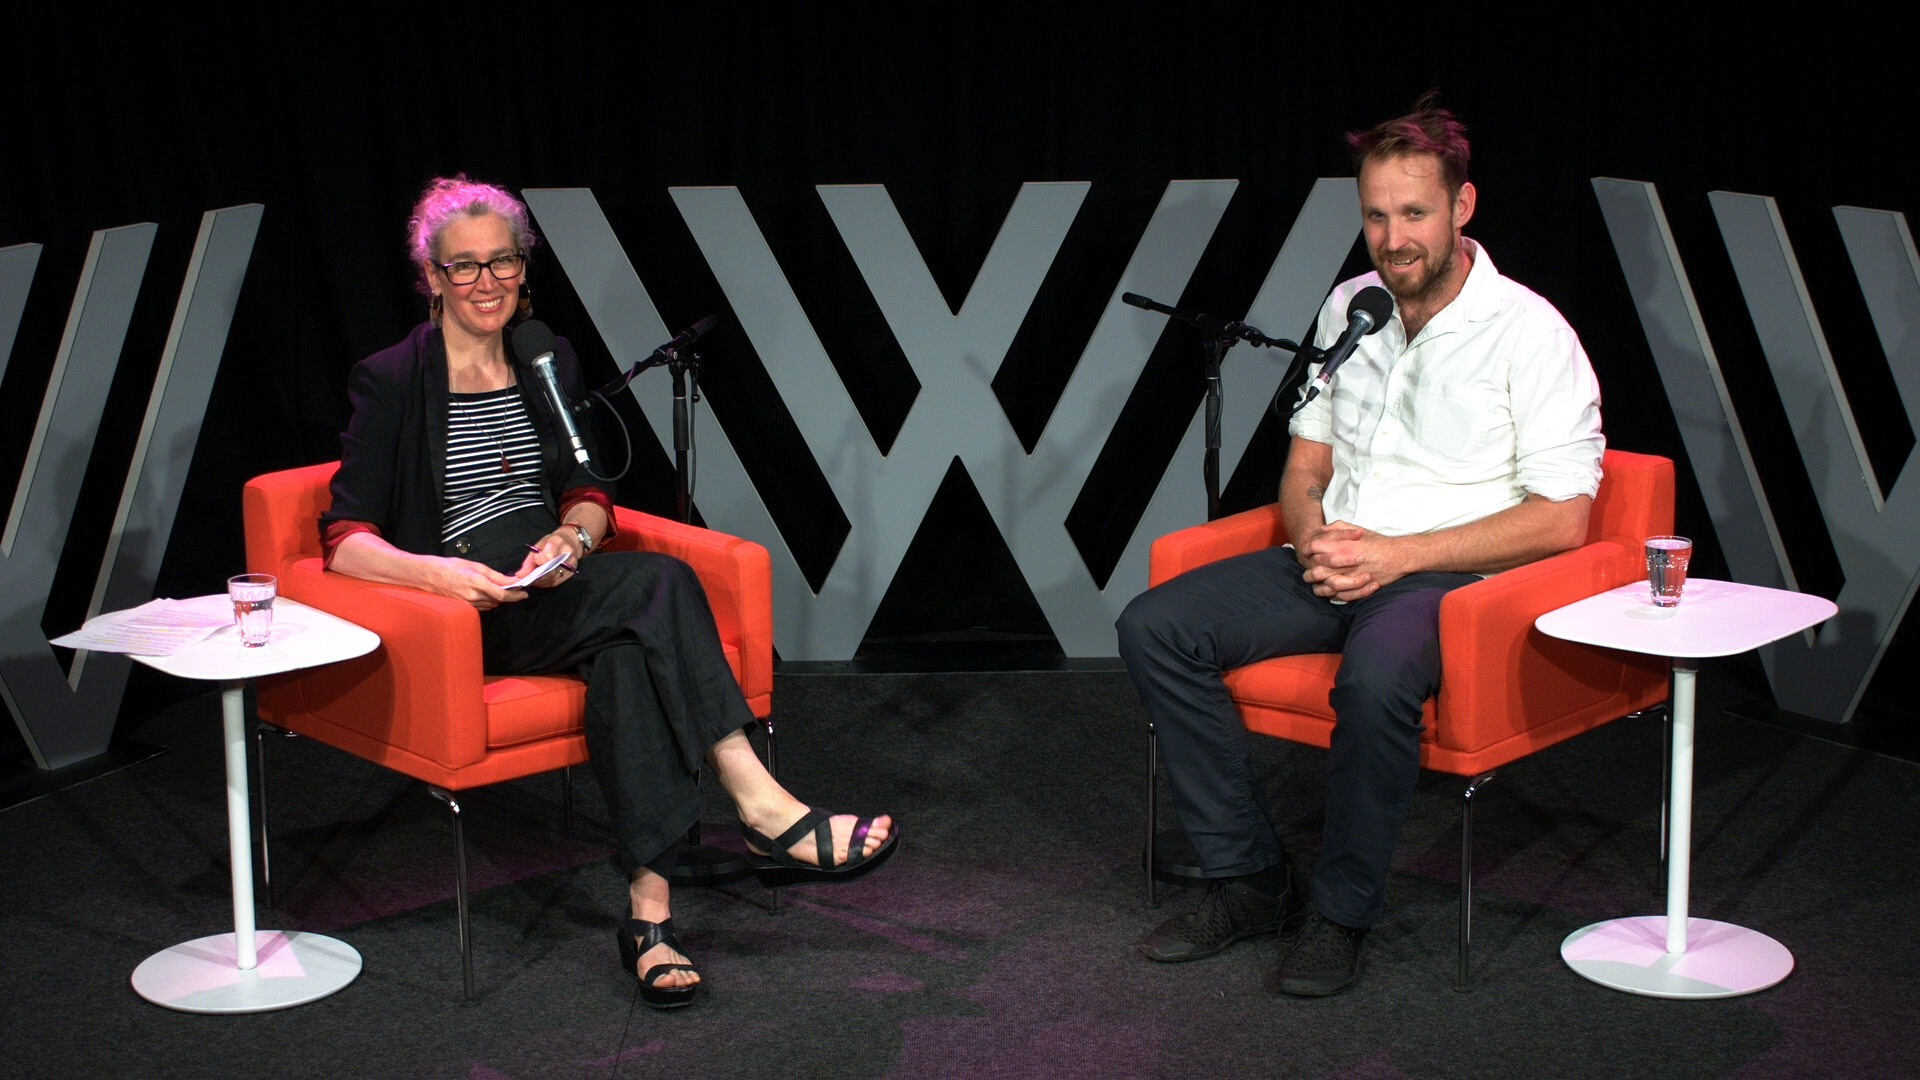 Photograph of Hilary Harper and Paul West